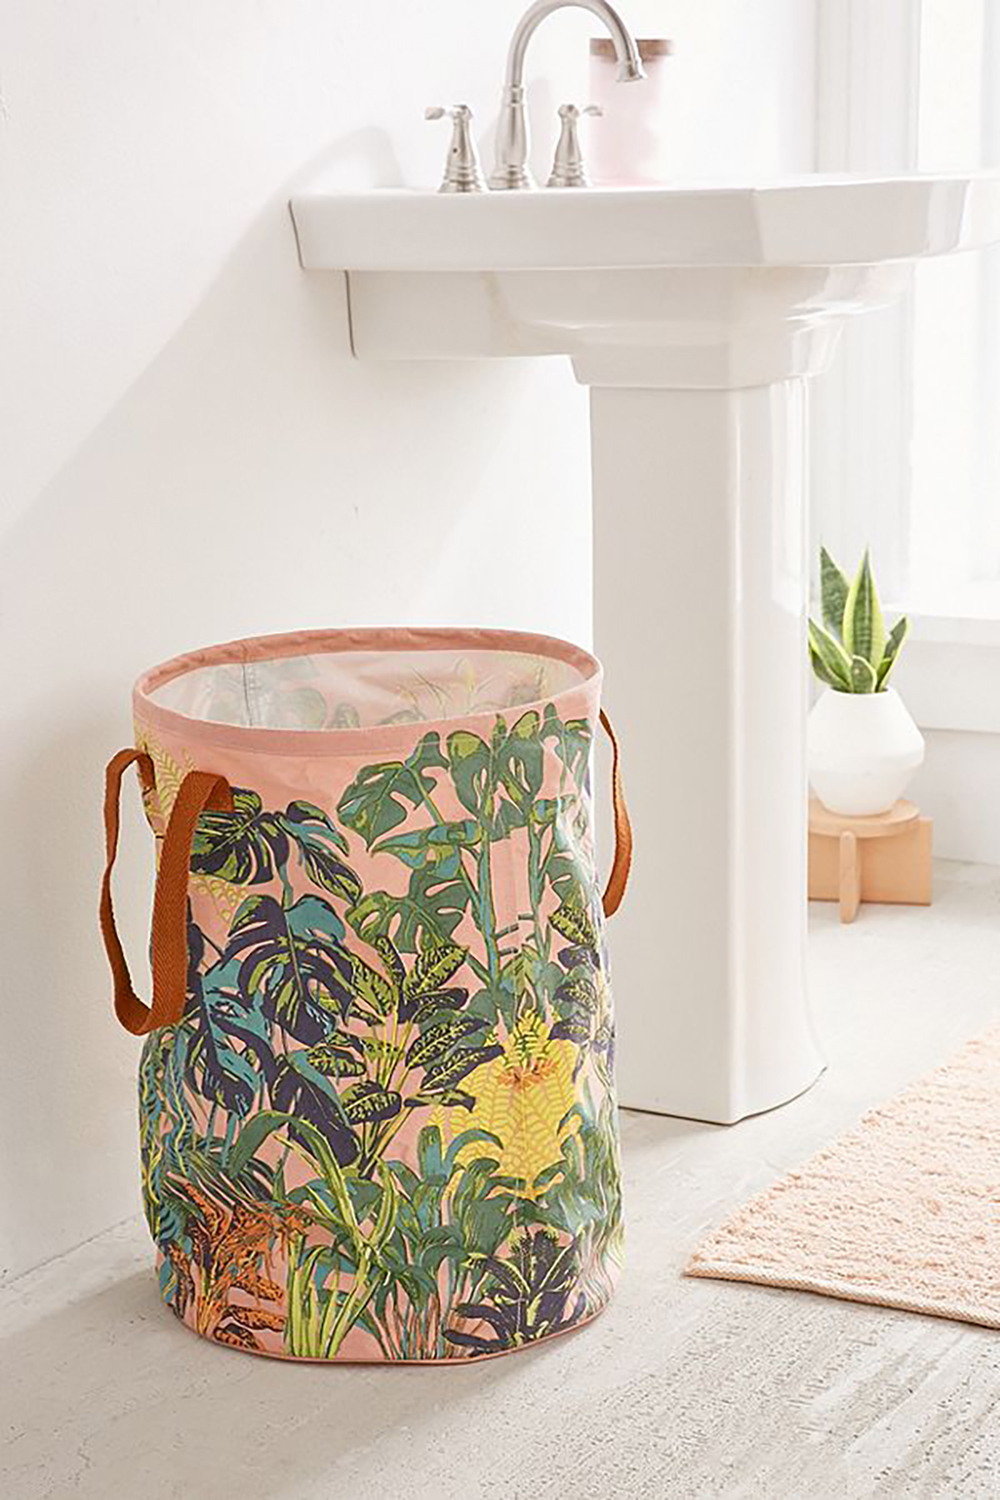 Botanical jungle laundry bag from urban outfitters - Bathroom with banana leaves- Transform your home into a tropical paradise | Aliz's Wonderland